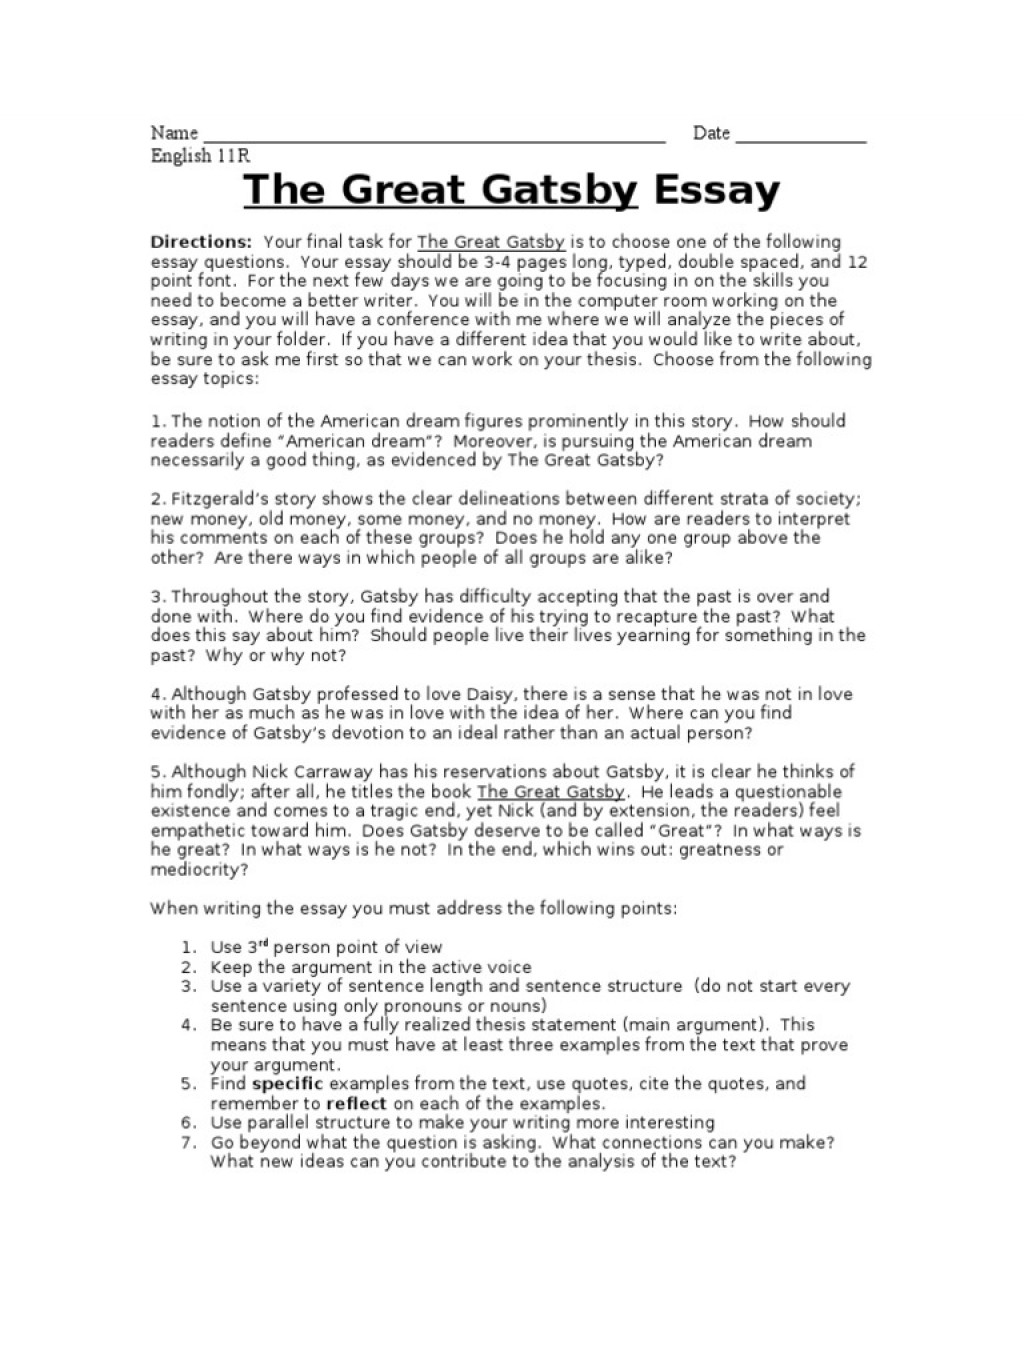 004 Essay Example The Great Gatsby Final 588d28d9b6d87f5dbd8b4963 American Fantastic Dream Conclusion Pdf Free Large